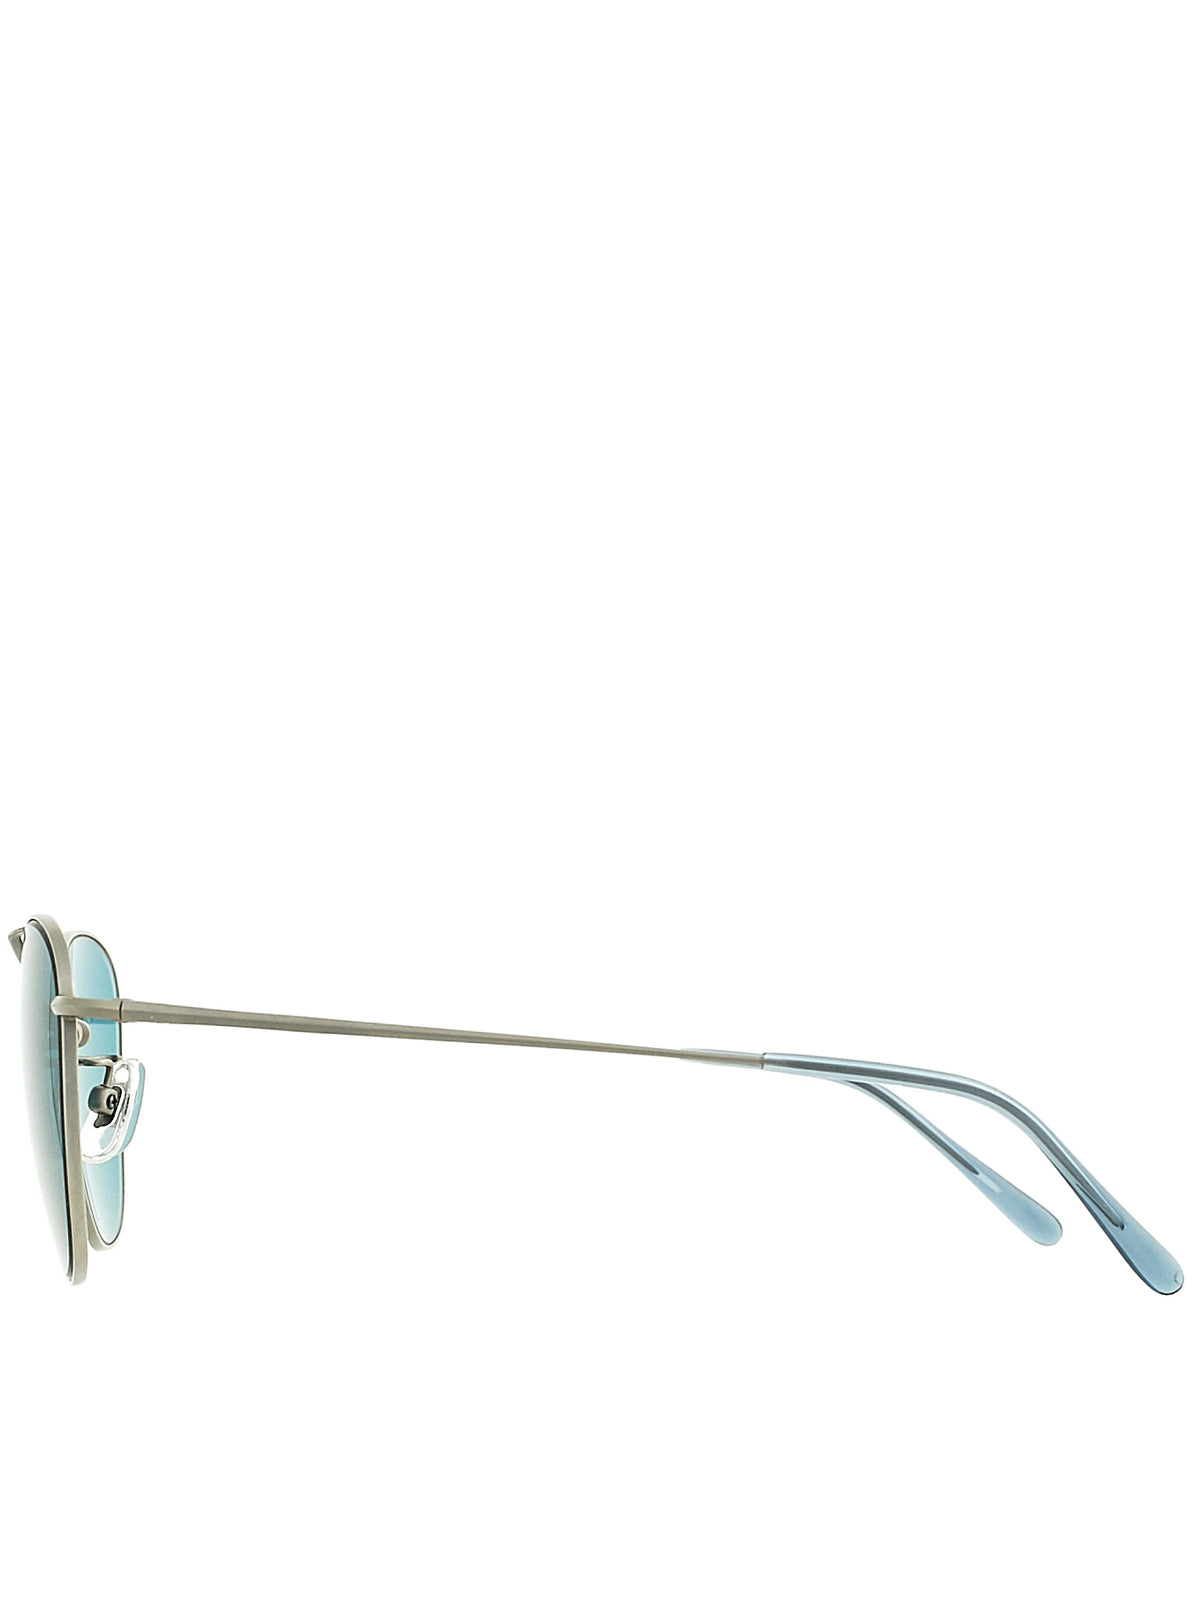 "'ST Titan Sunglasses"" (ST-TITAN-NAVAL-NAKED-BLUEGREEN)"